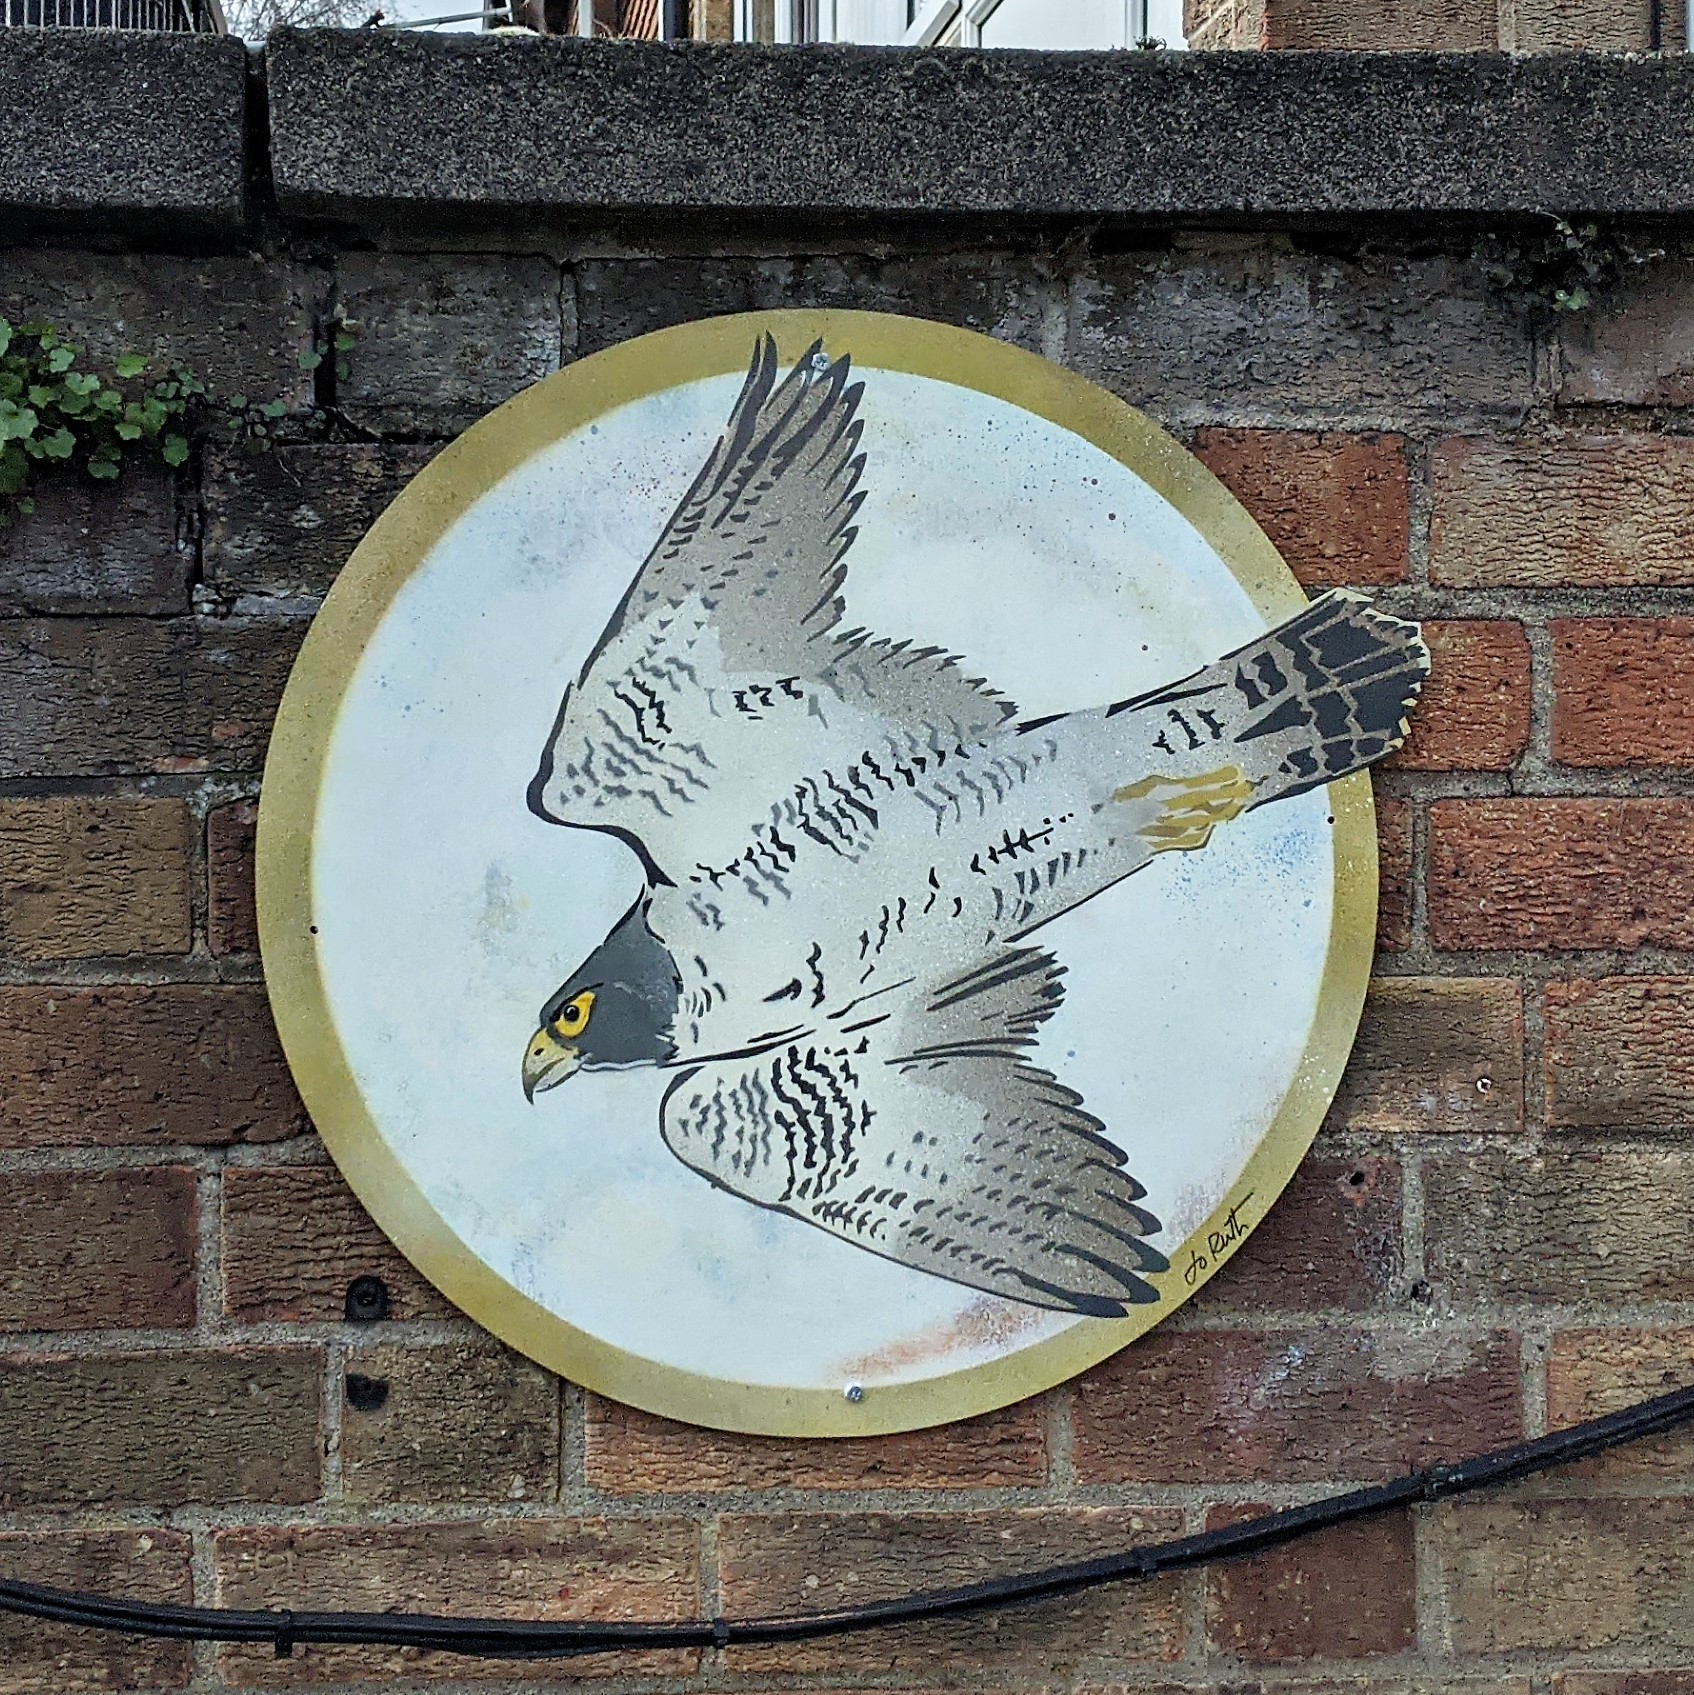 The Falcon disc mounted on a brick wall.